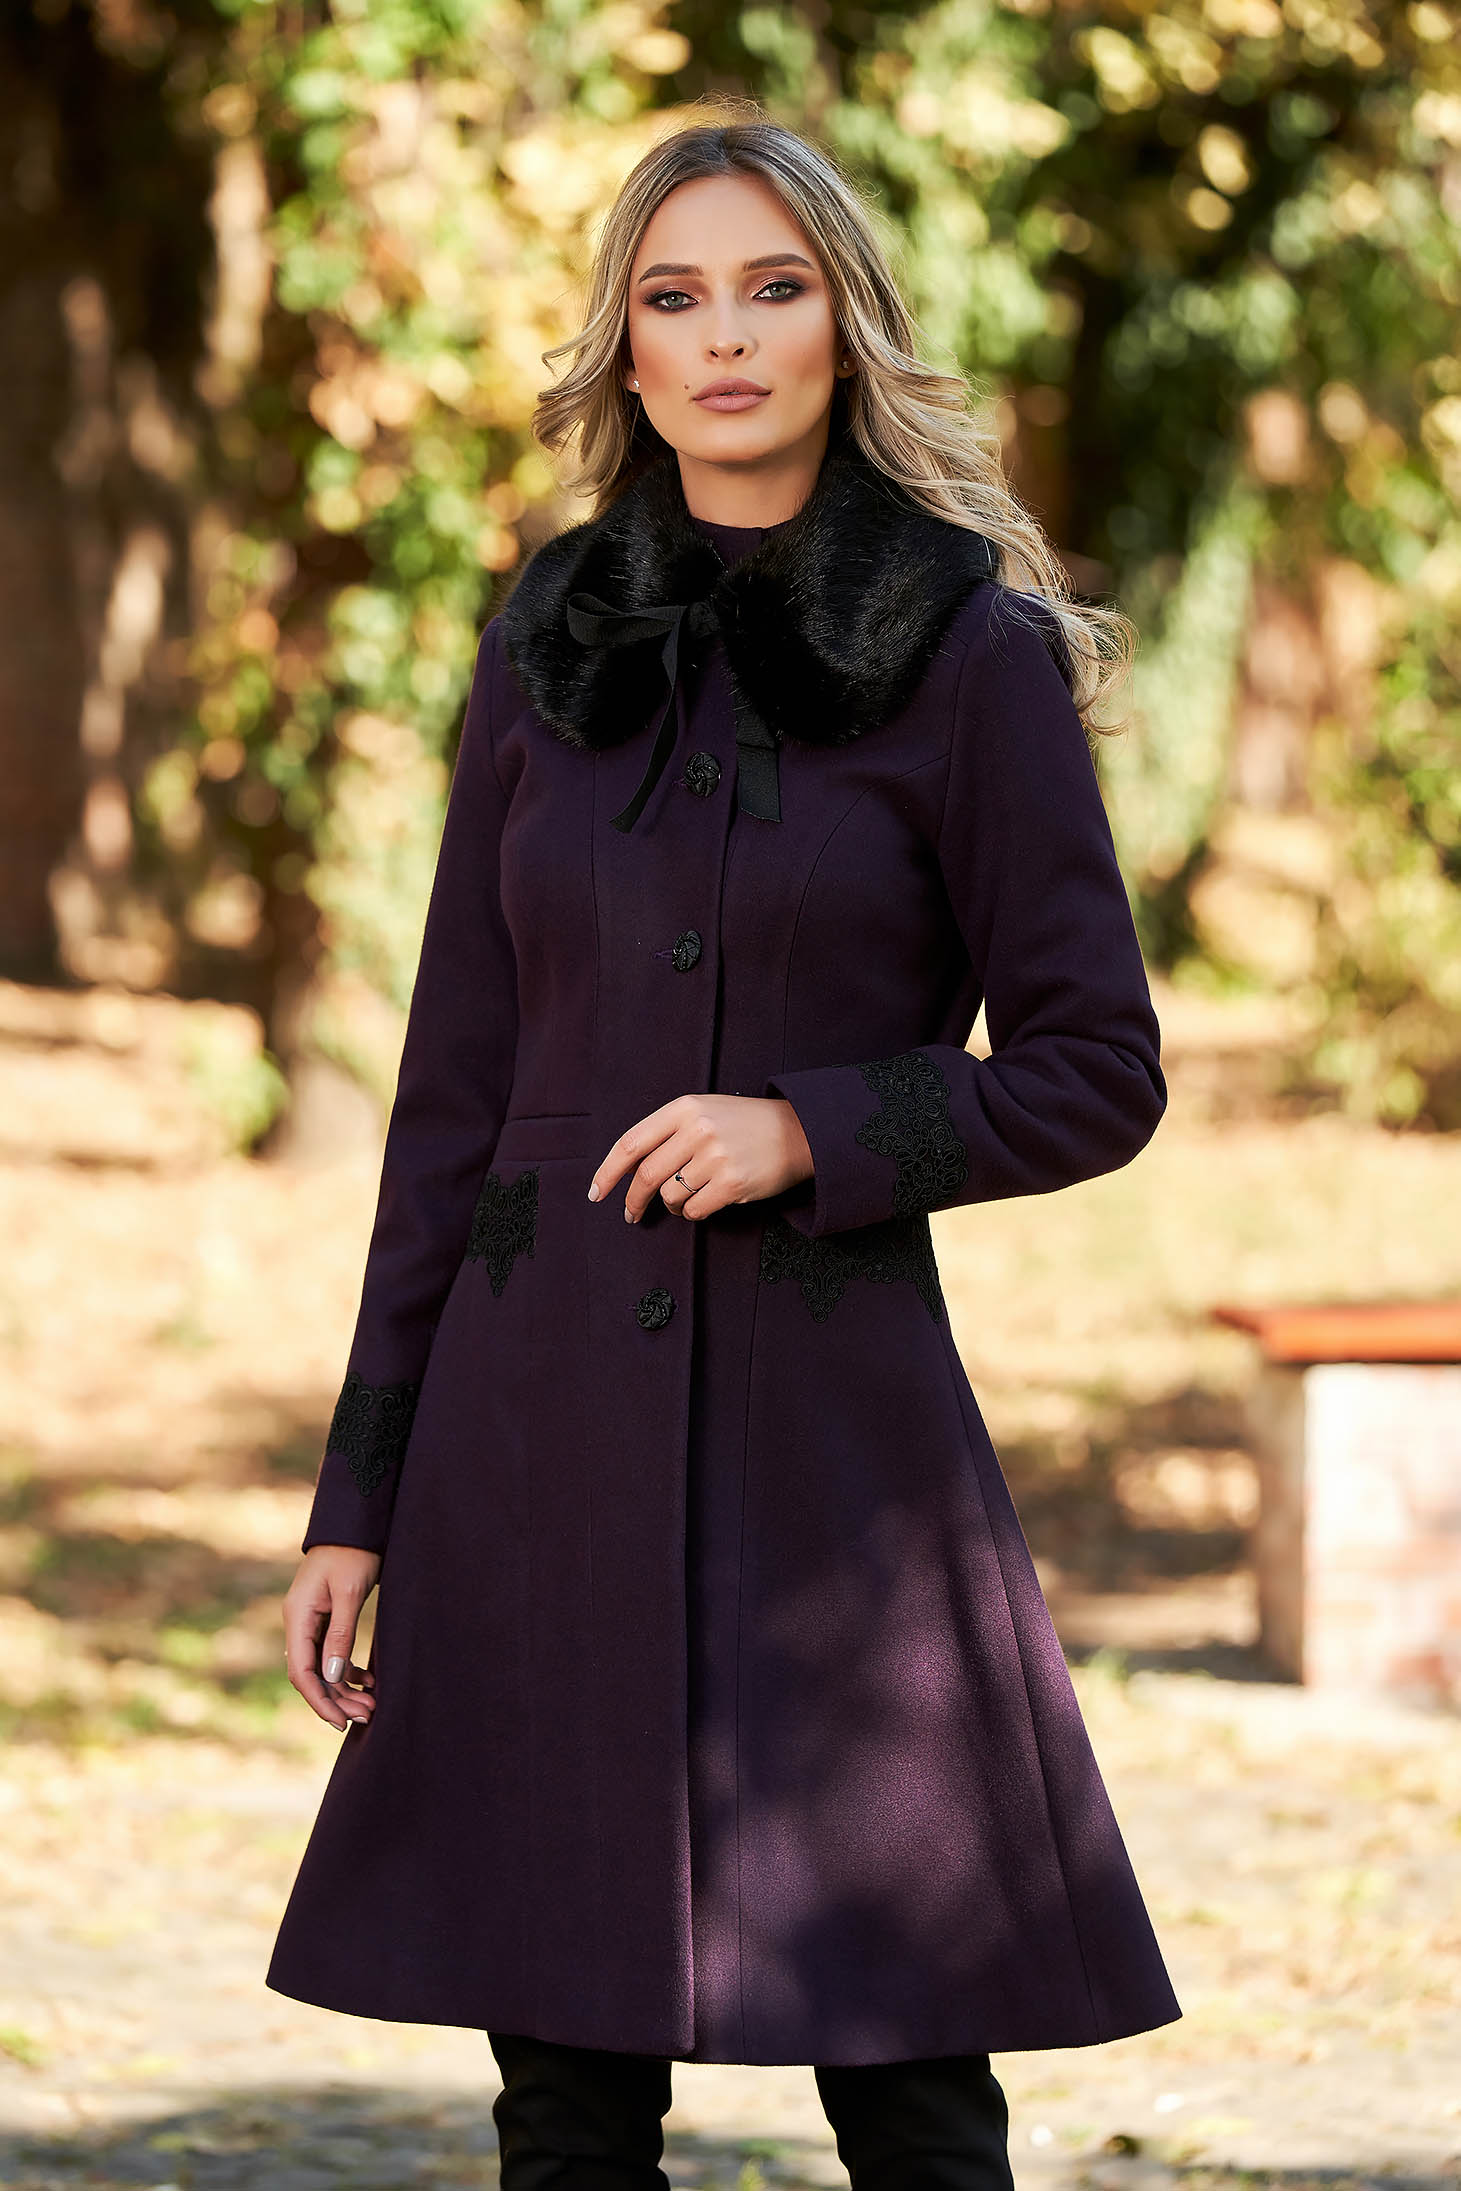 Best impulse elegant from wool with inside lining purple coat with embroidery details with pockets